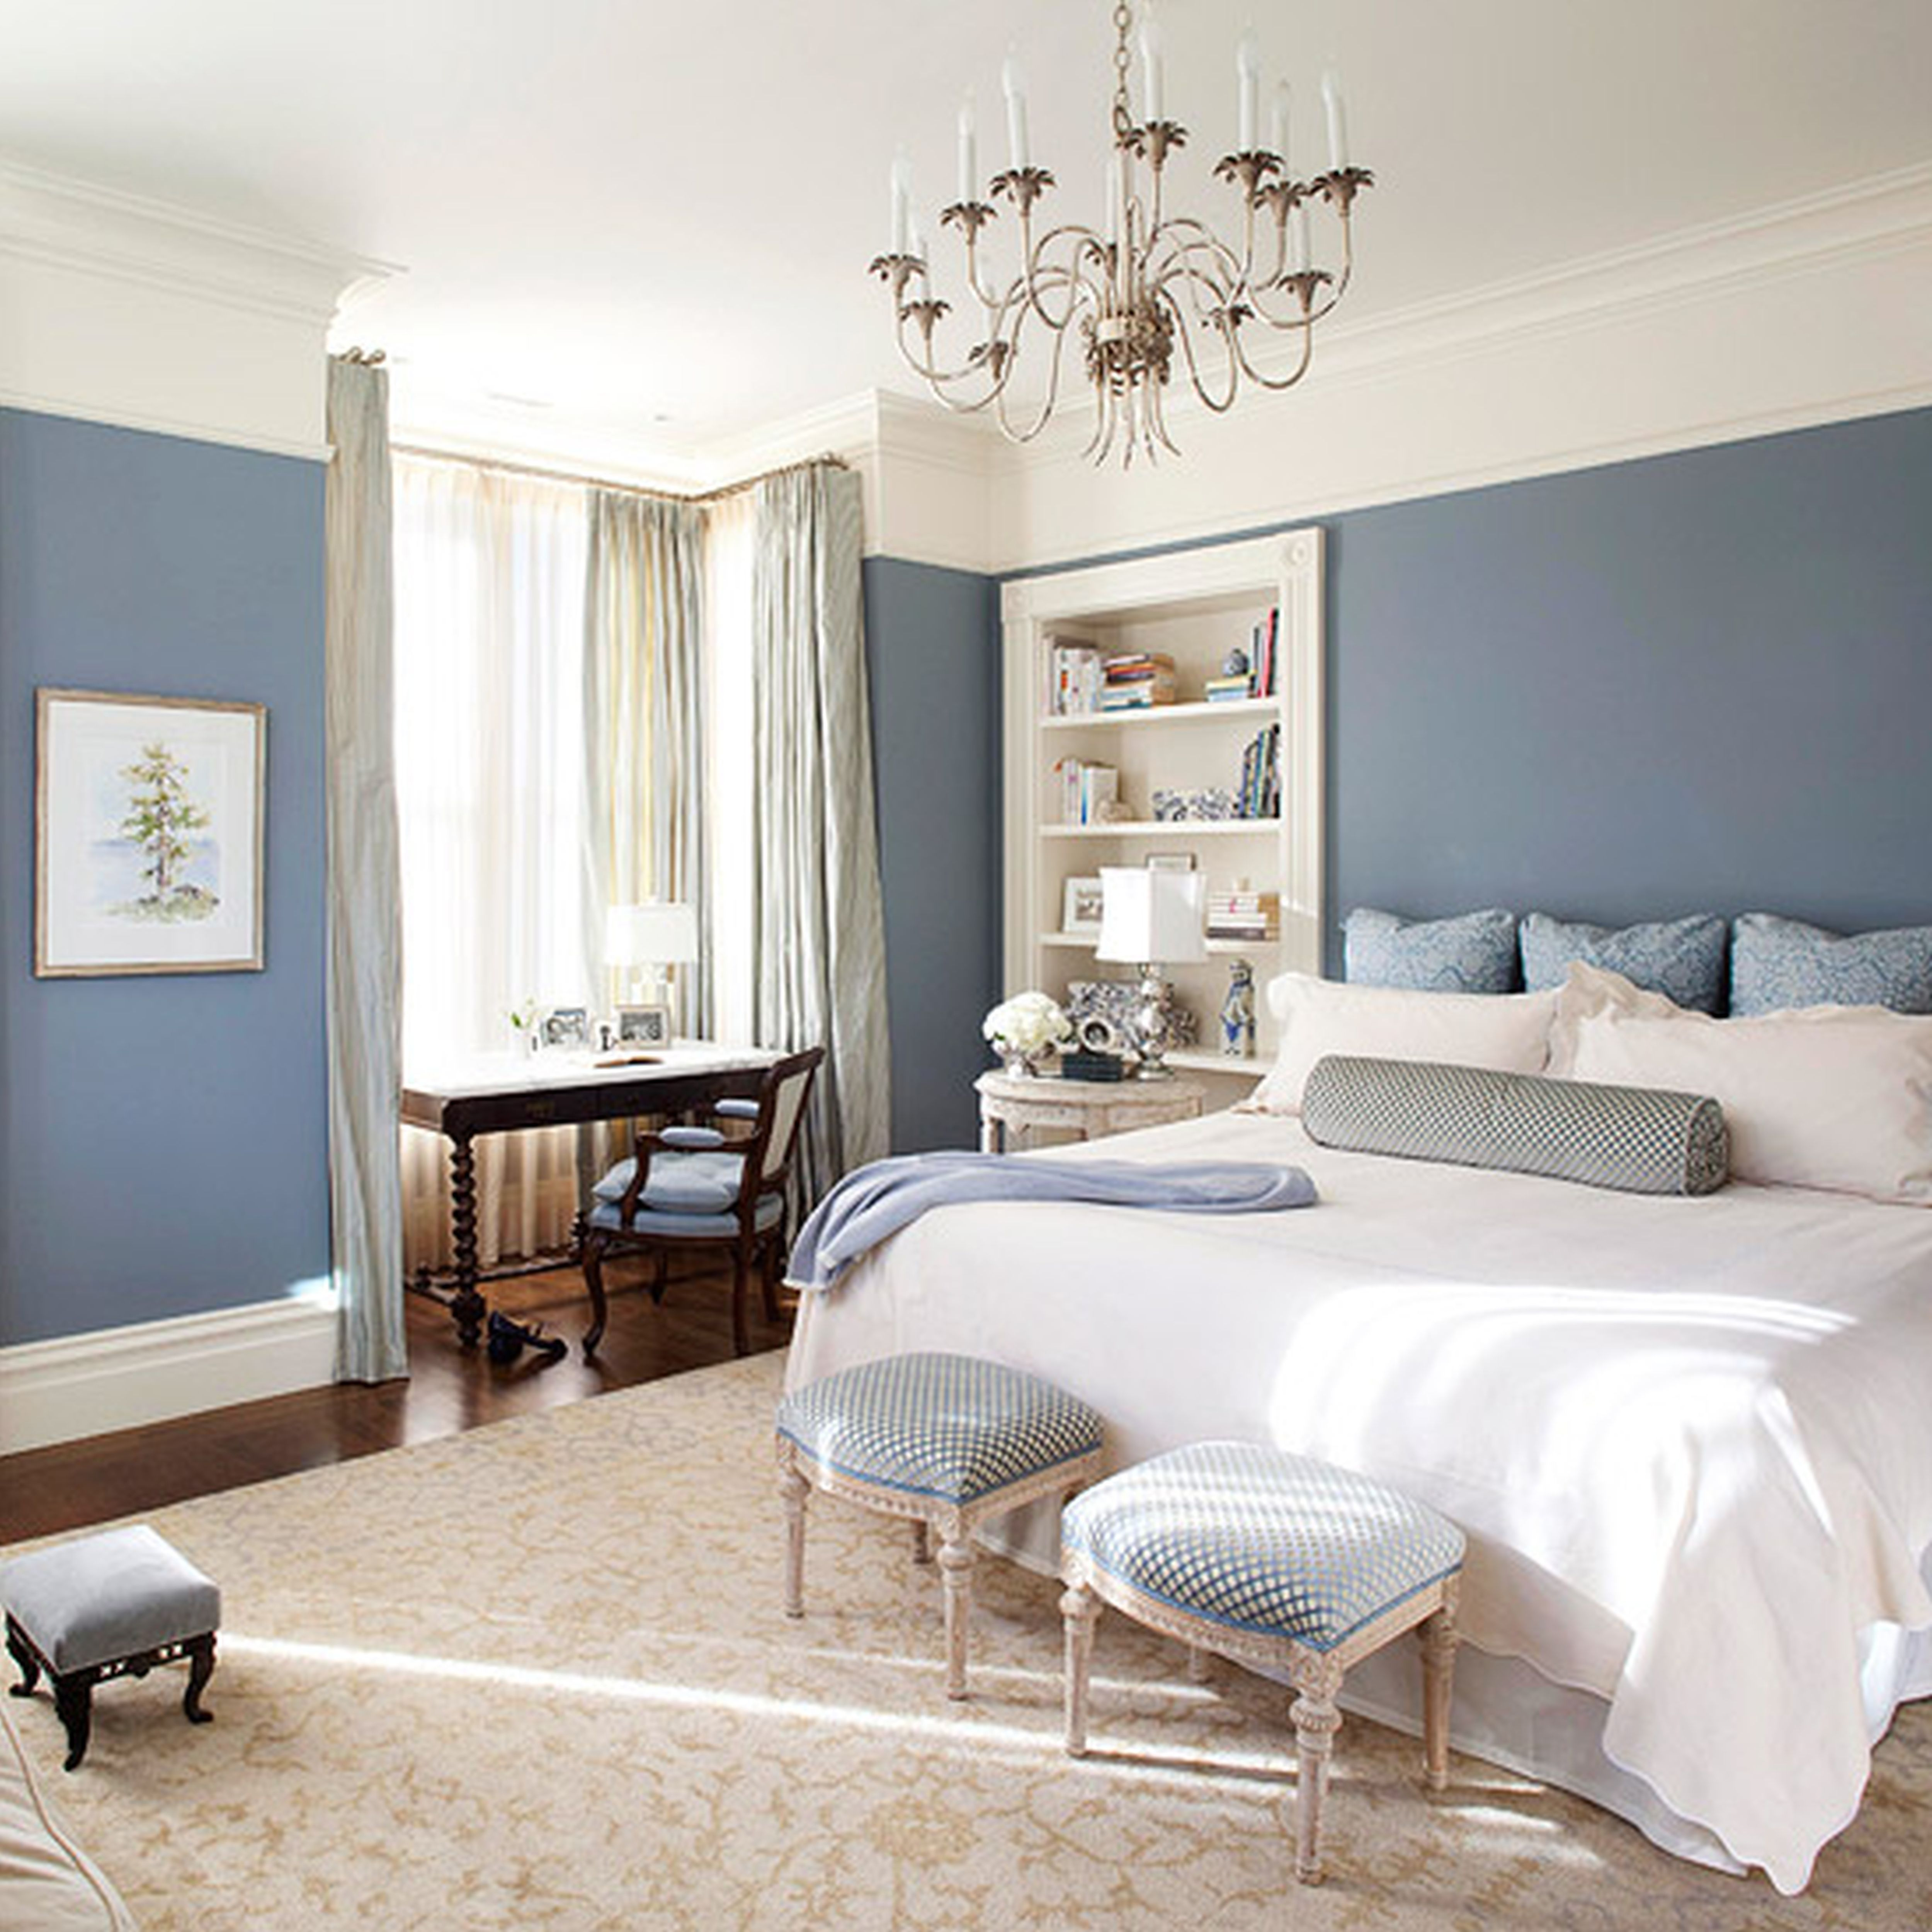 Bedroom Expansive Bedroom Ideas For Teenage Girls Blue Tumblr Modern Beige And Blue Bedroom Ideas Blue Master Bedroom White Bedroom Decor Bedroom Wall Colors